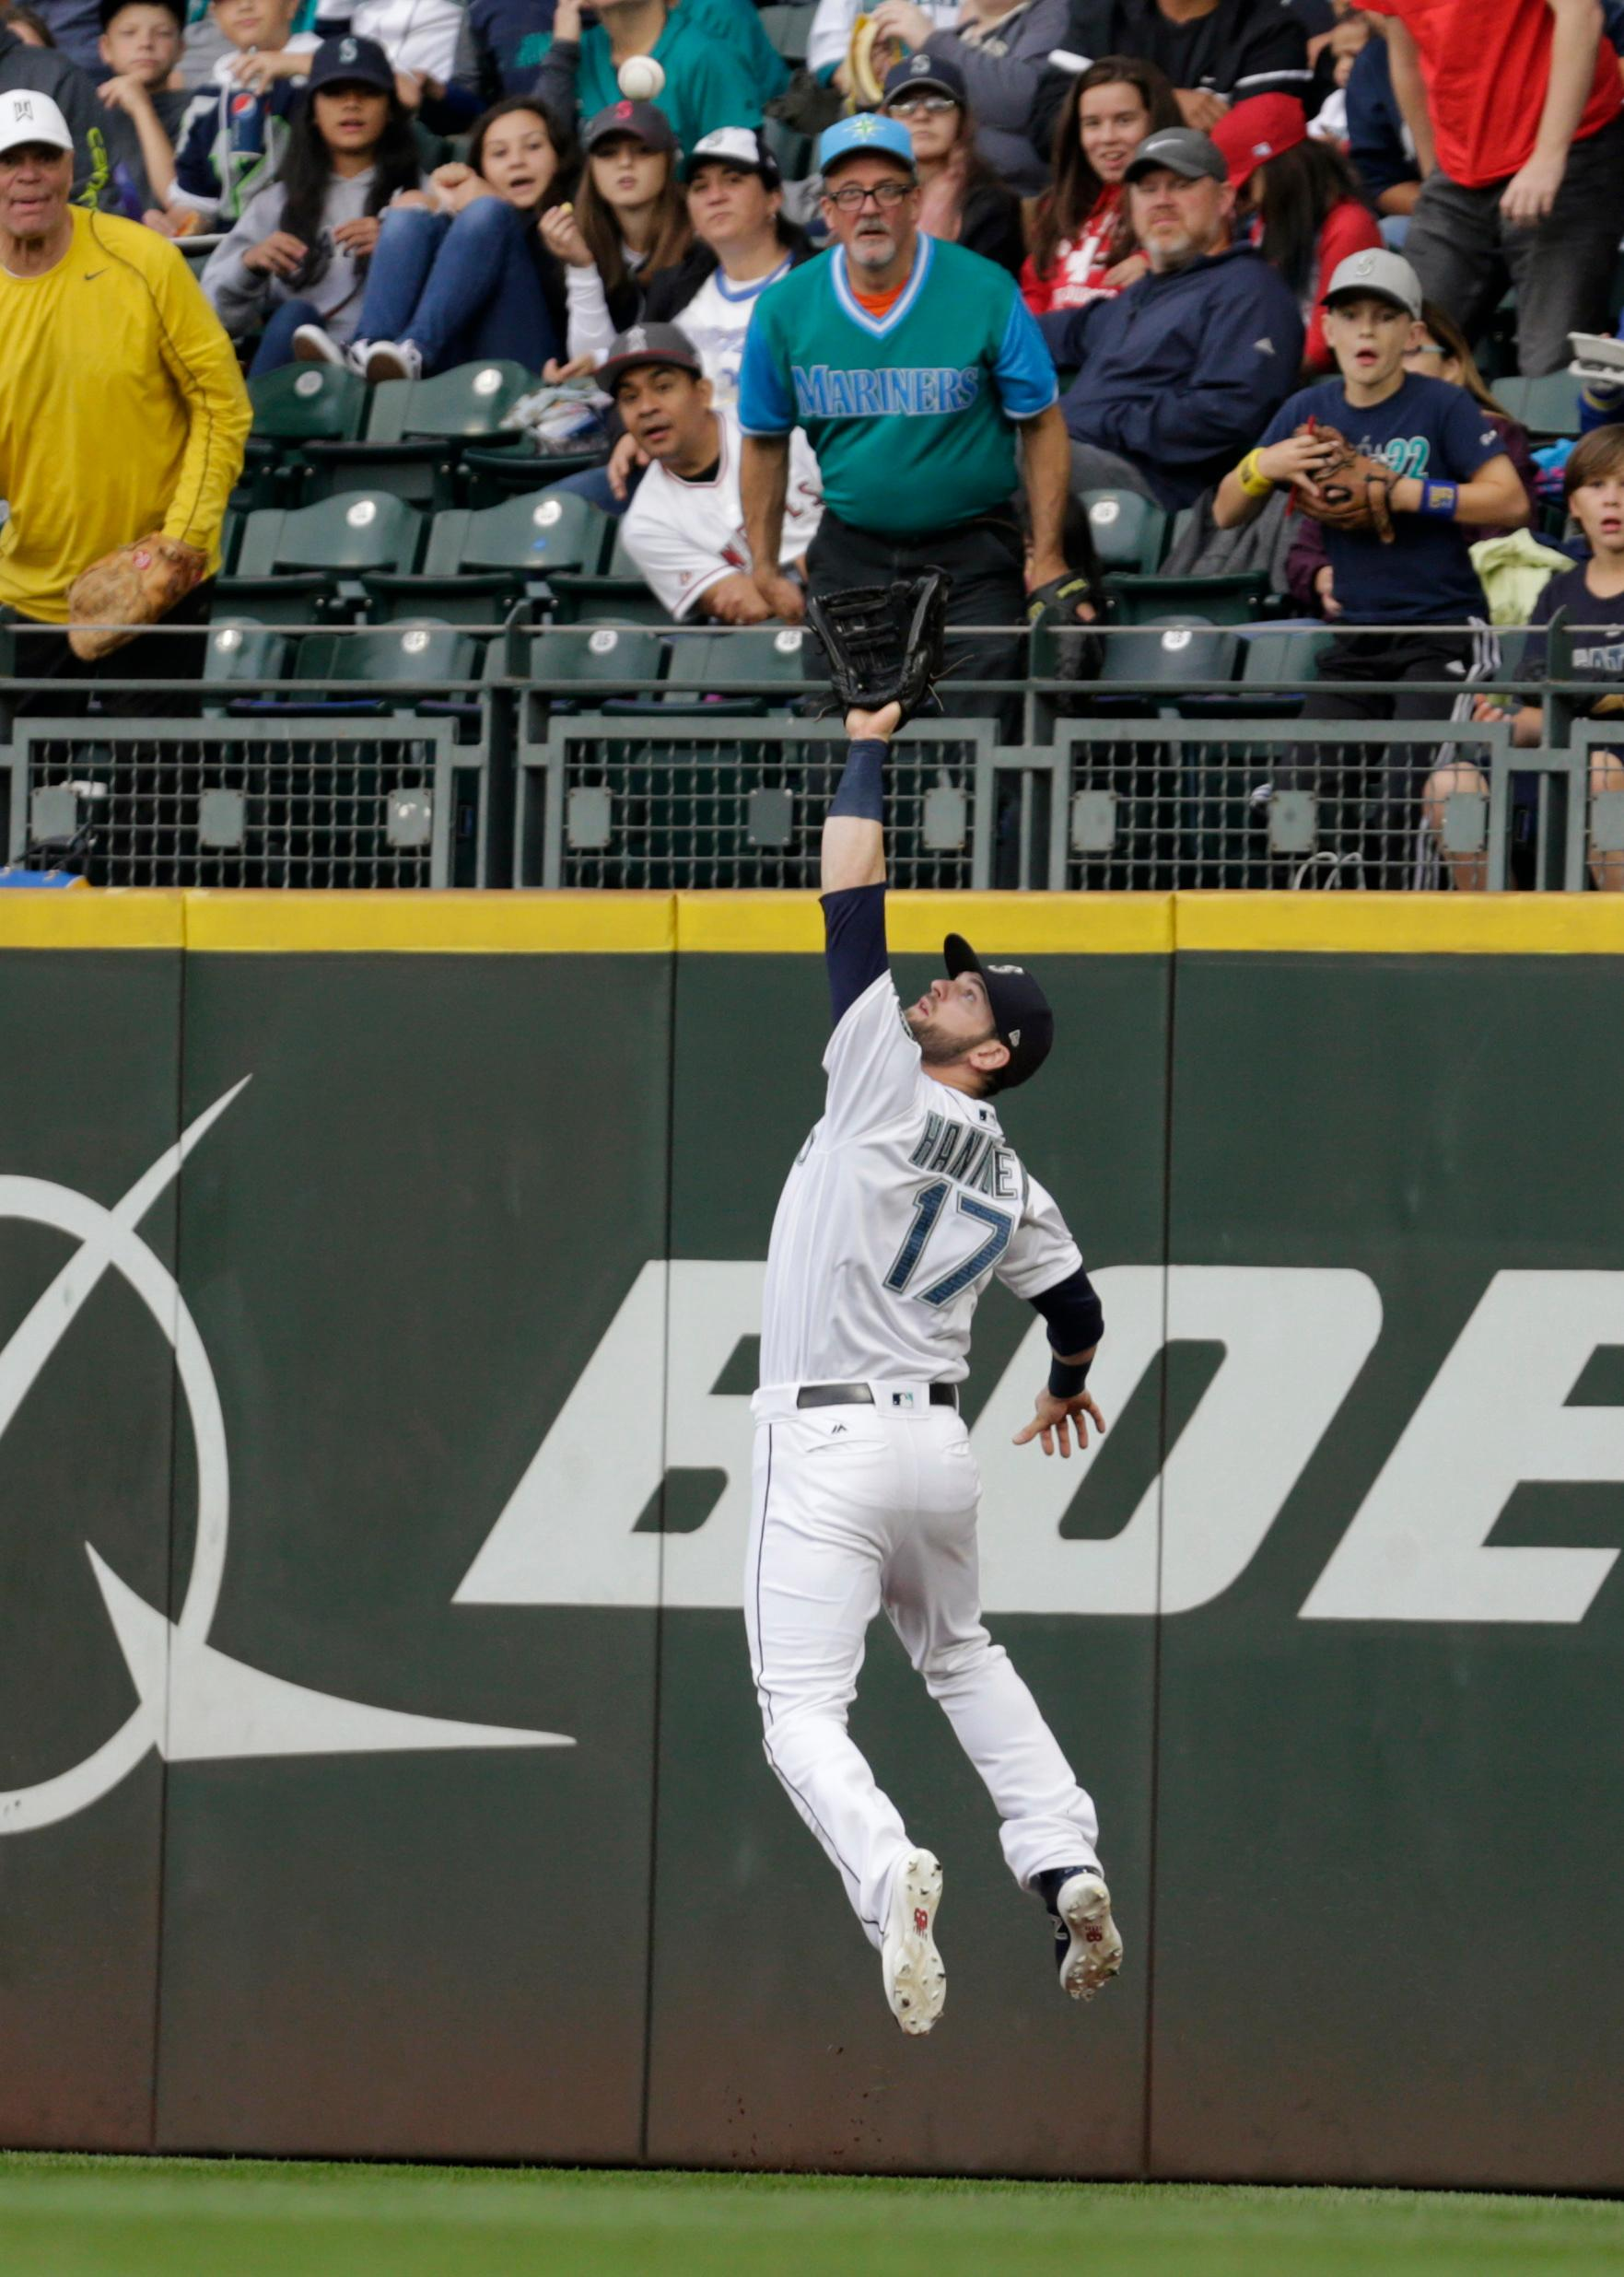 Seattle Mariners right fielder Mitch Haniger leaps to catch a fly ball for the out on Los Angeles Angels' Justin Upton during the first inning of a baseball game Saturday, Sept. 9, 2017, in Seattle. (AP Photo/John Froschauer)